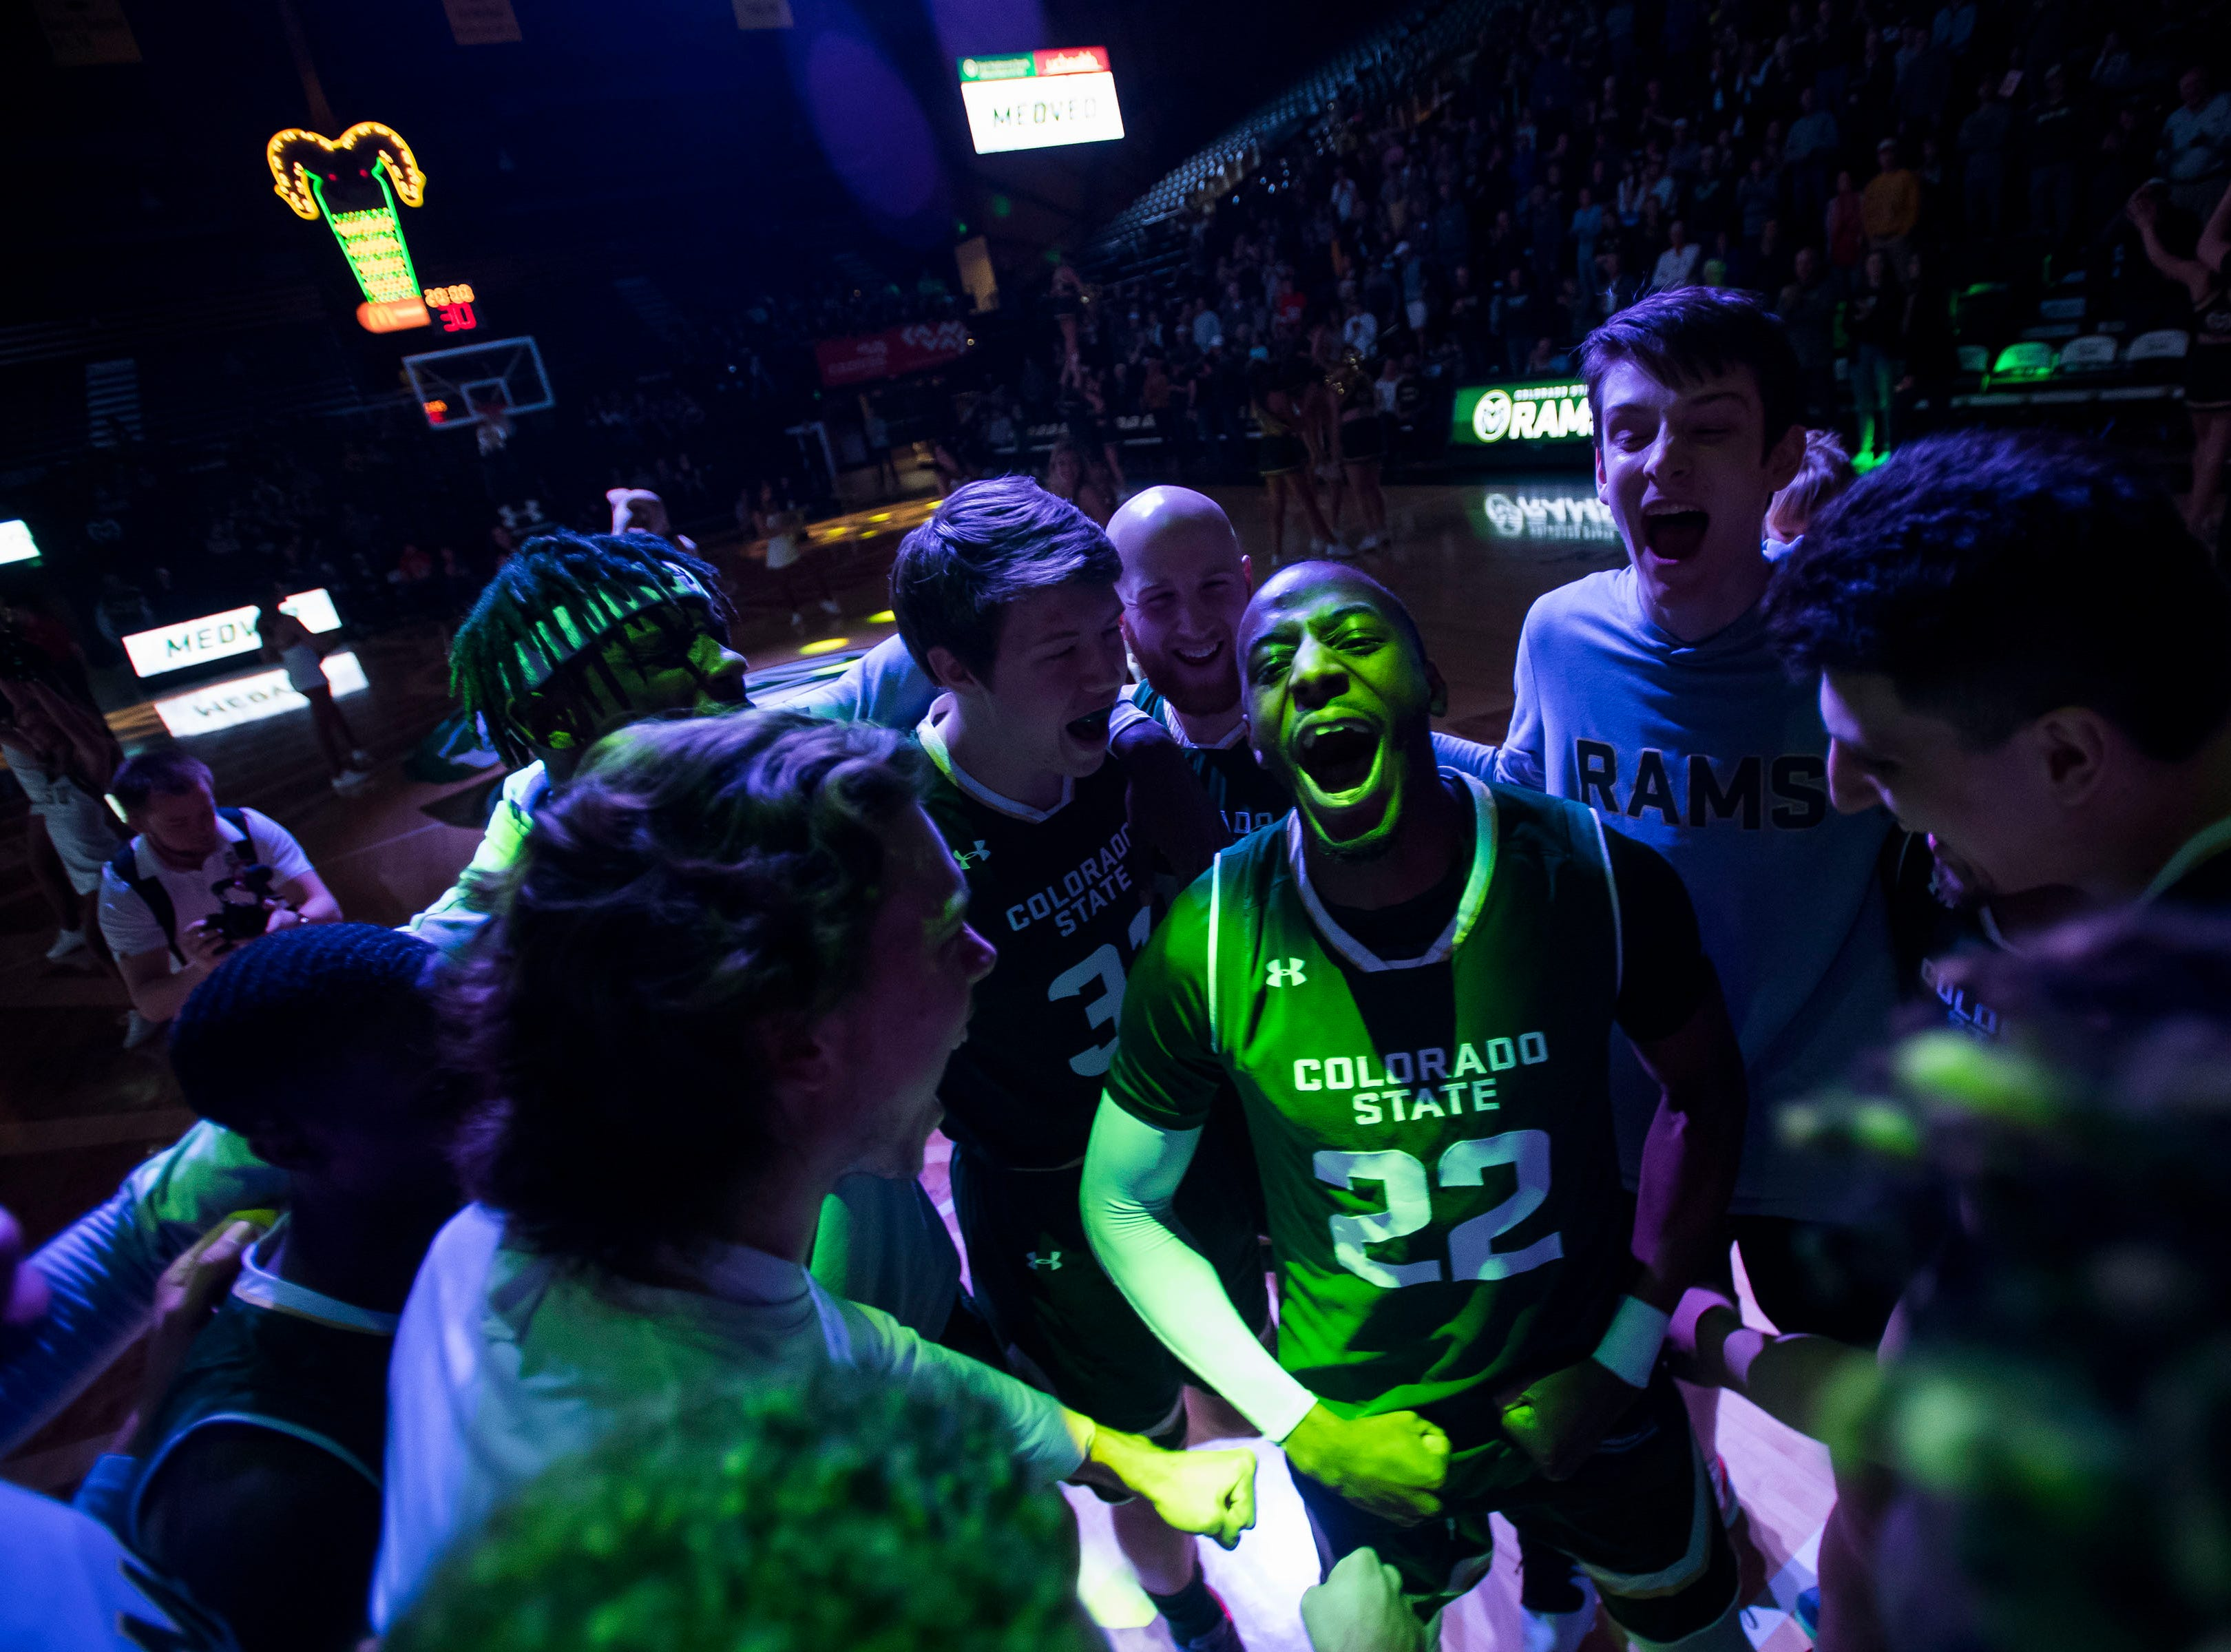 Colorado State University senior guard J.D. Paige (22) gets in the center of the huddle before a game against University of Nevada, Las Vegas on Saturday, March 9, 2019, at Moby Arena in Fort Collins, Colo.